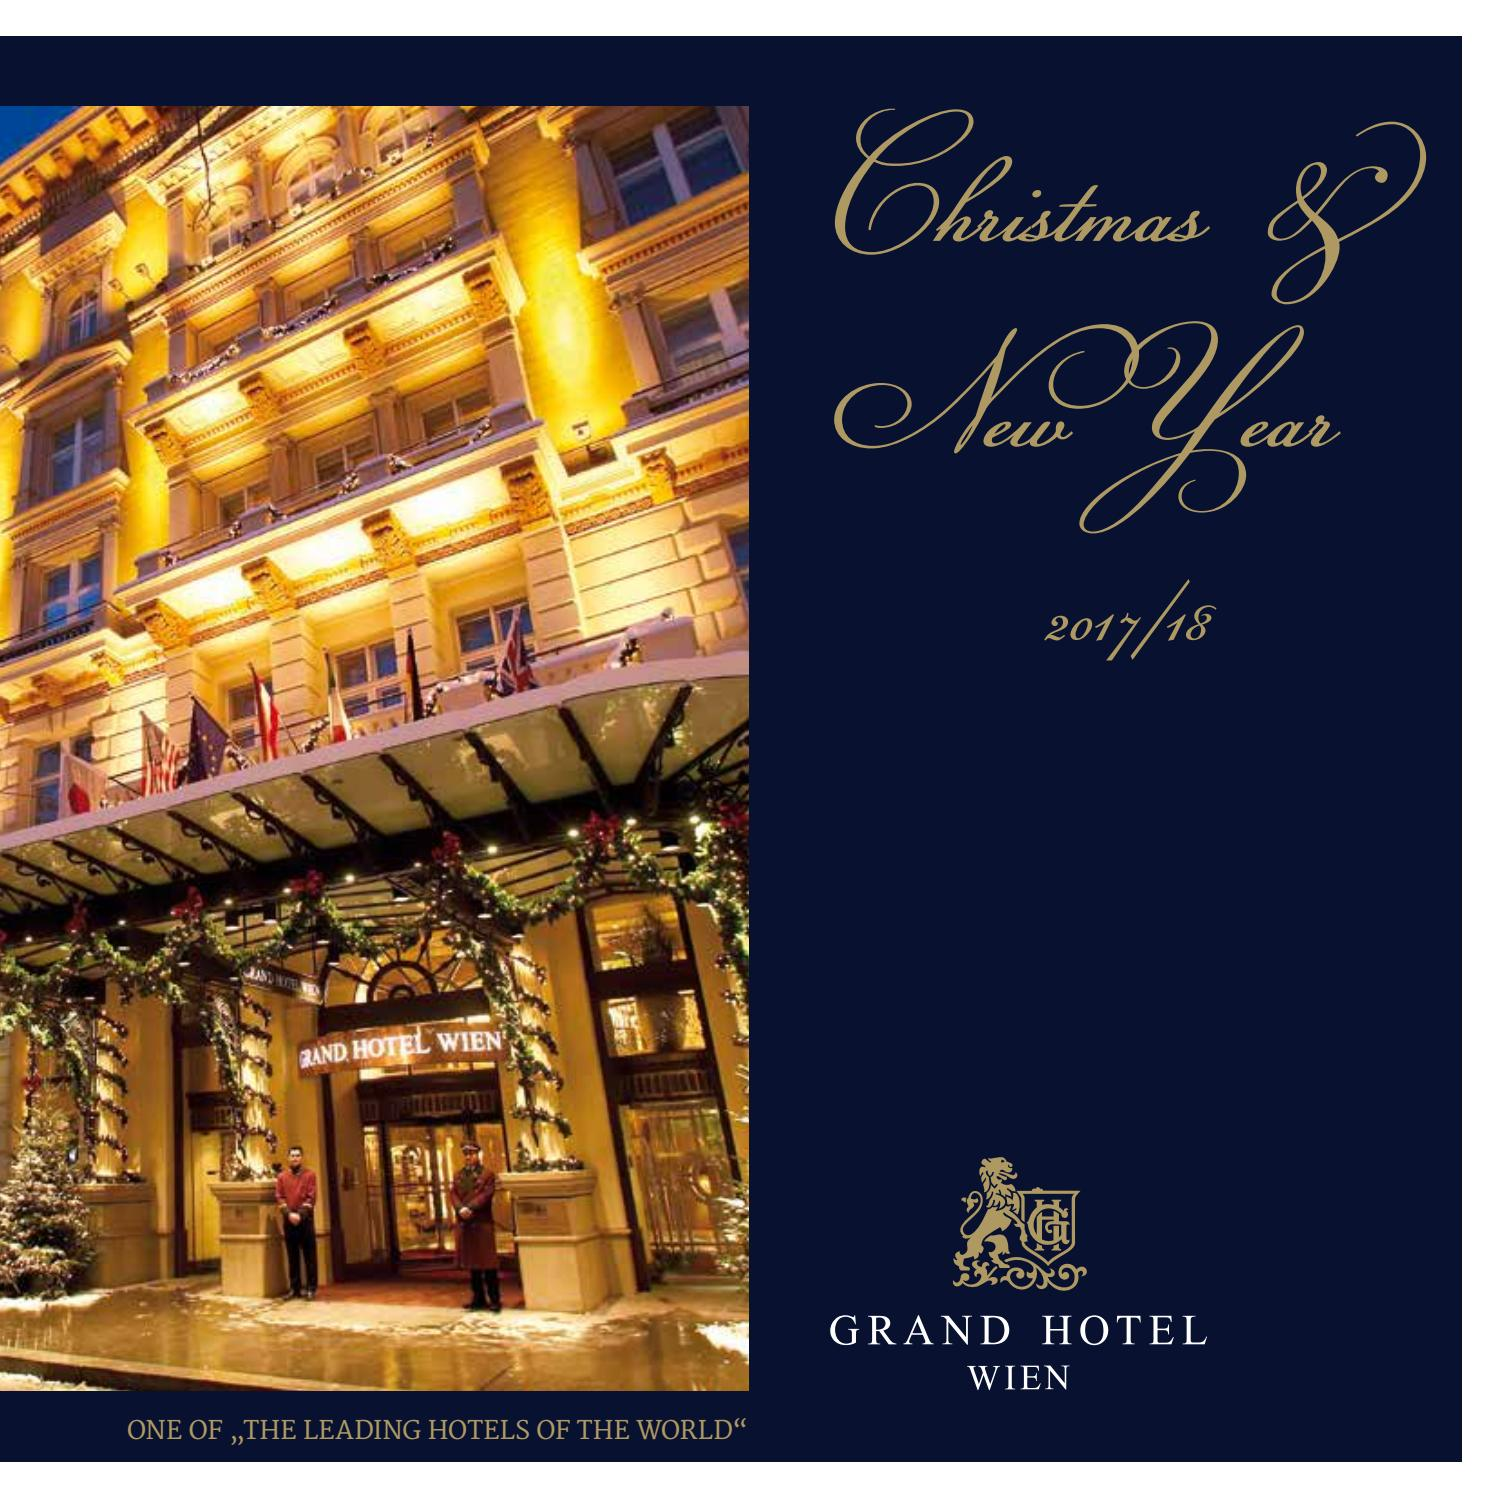 Schottische Küche Wien Grand Hotel Wien Christmas New Year 2017 18 By Grand Hotel Wien